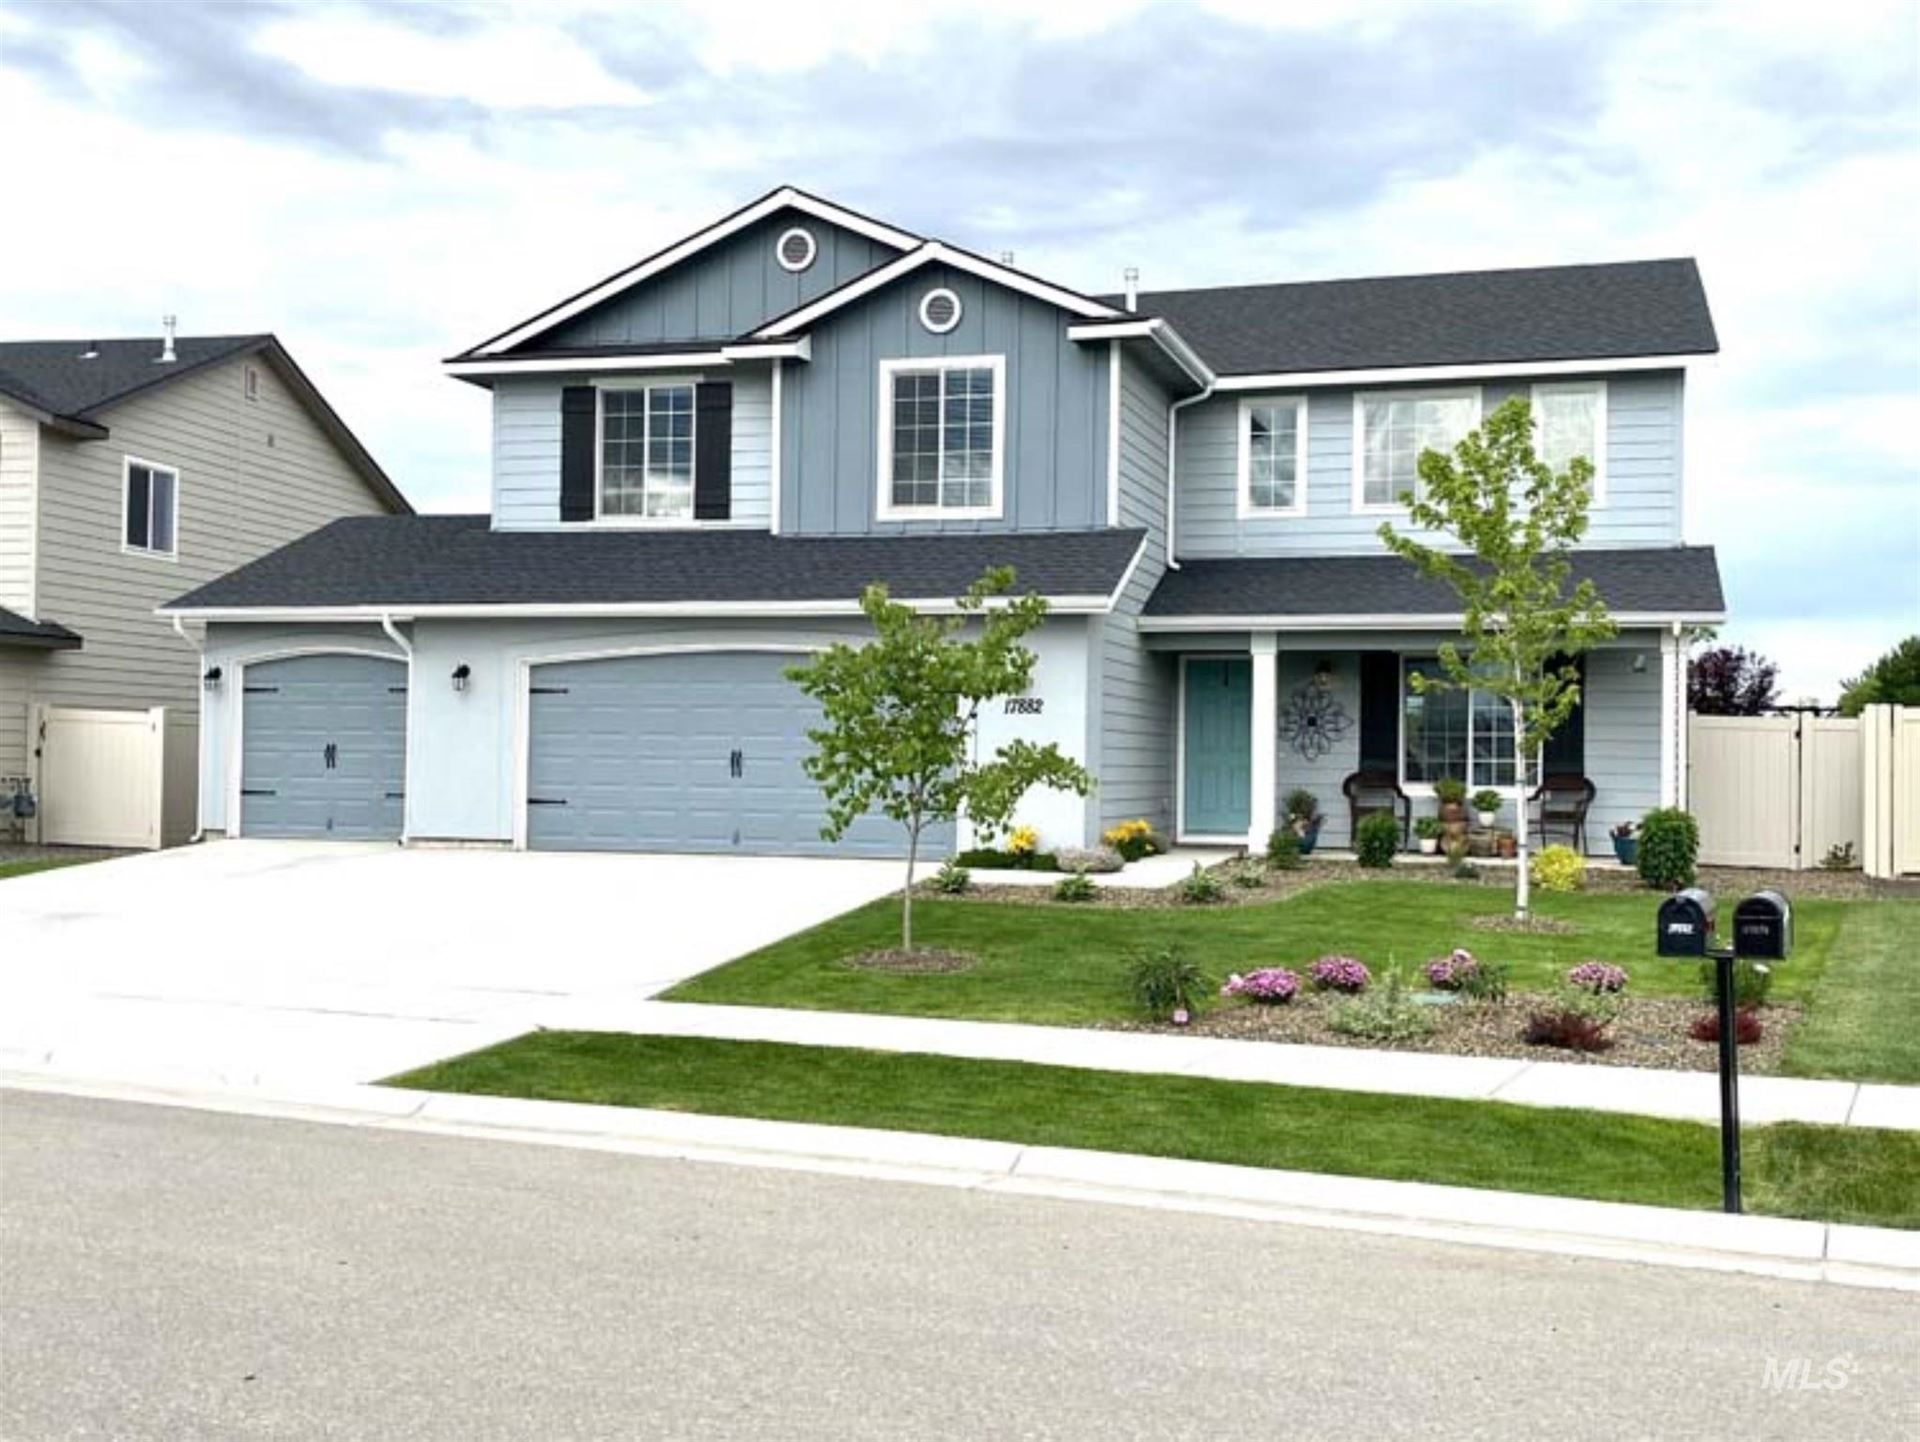 Photo of 17882 N Newdale Ave., Nampa, ID 83687 (MLS # 98787392)